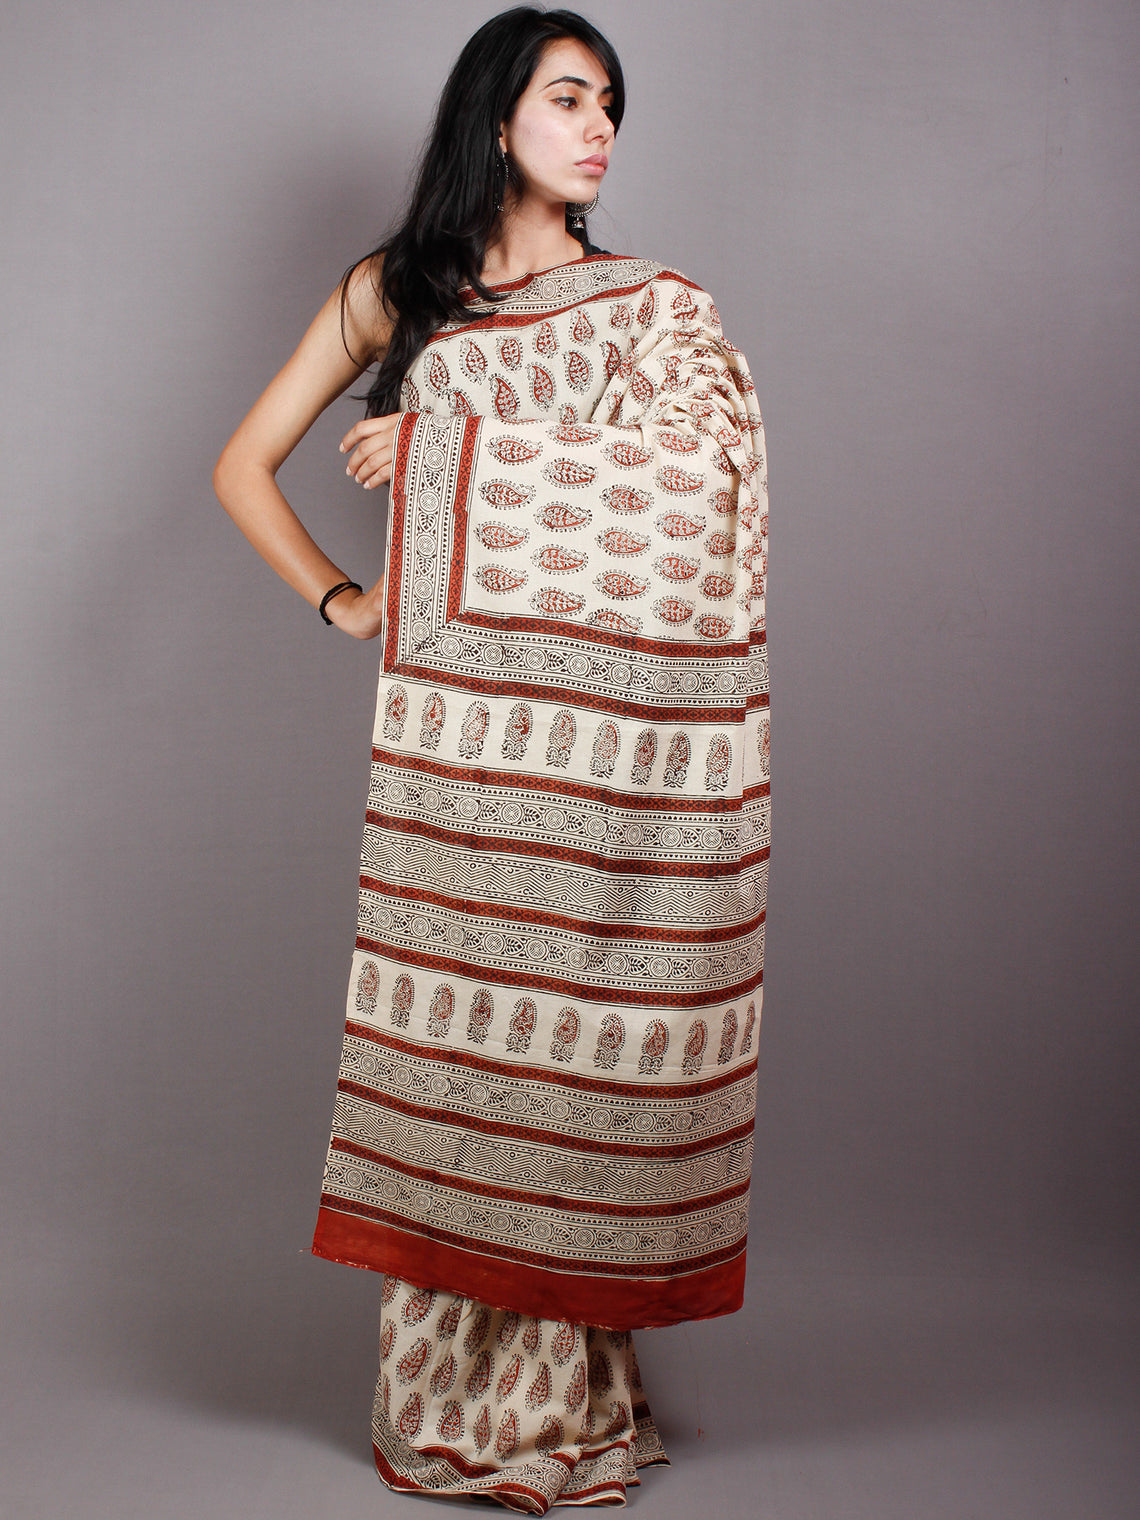 Beige Red Black Cotton Hand Block Printed Saree in Natural Colors - S03170497